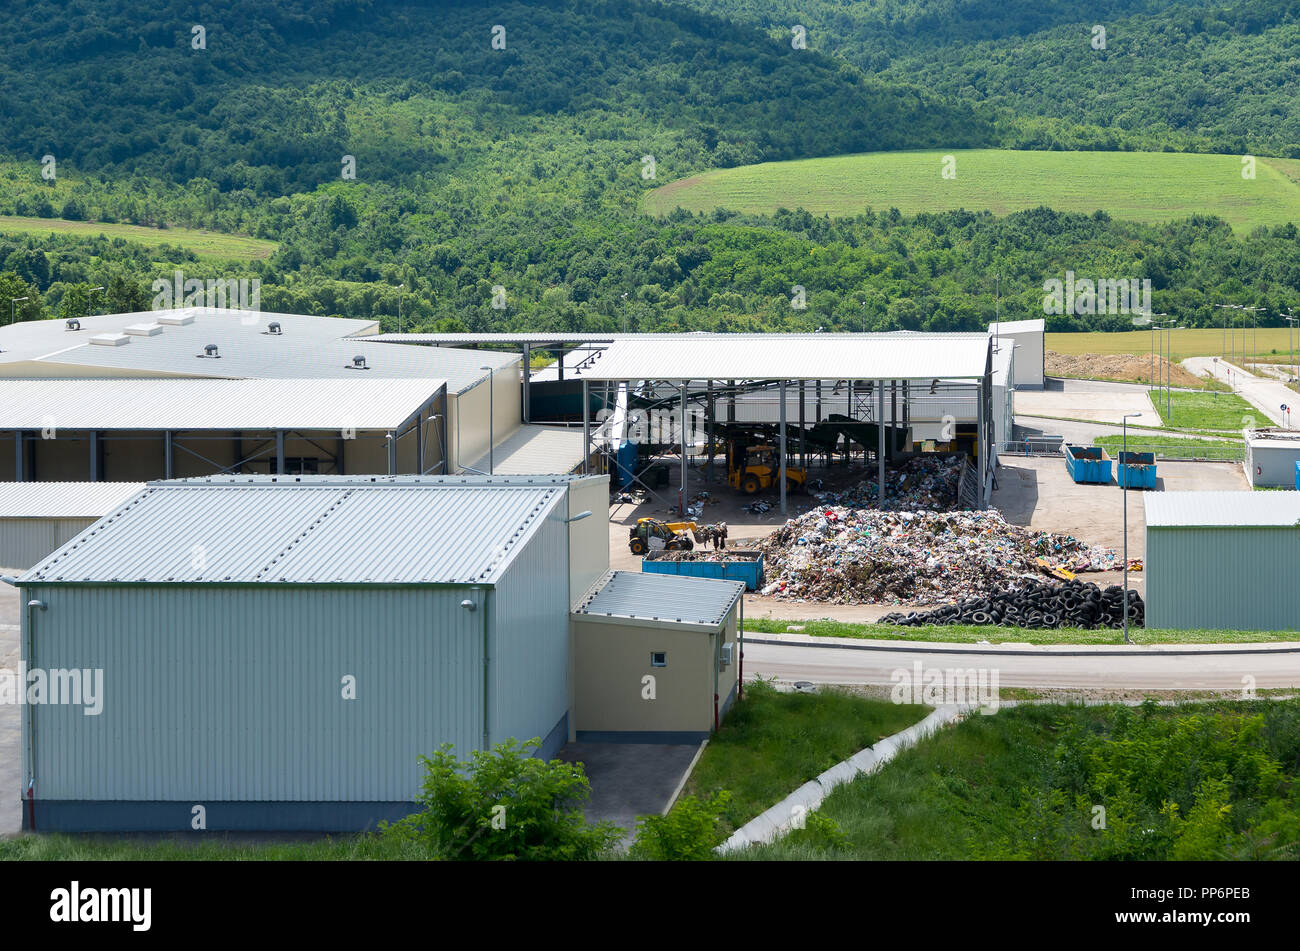 Waste treatment plant depot. Urban landfill built under the program Environment with a grant from the European Union. - Stock Image